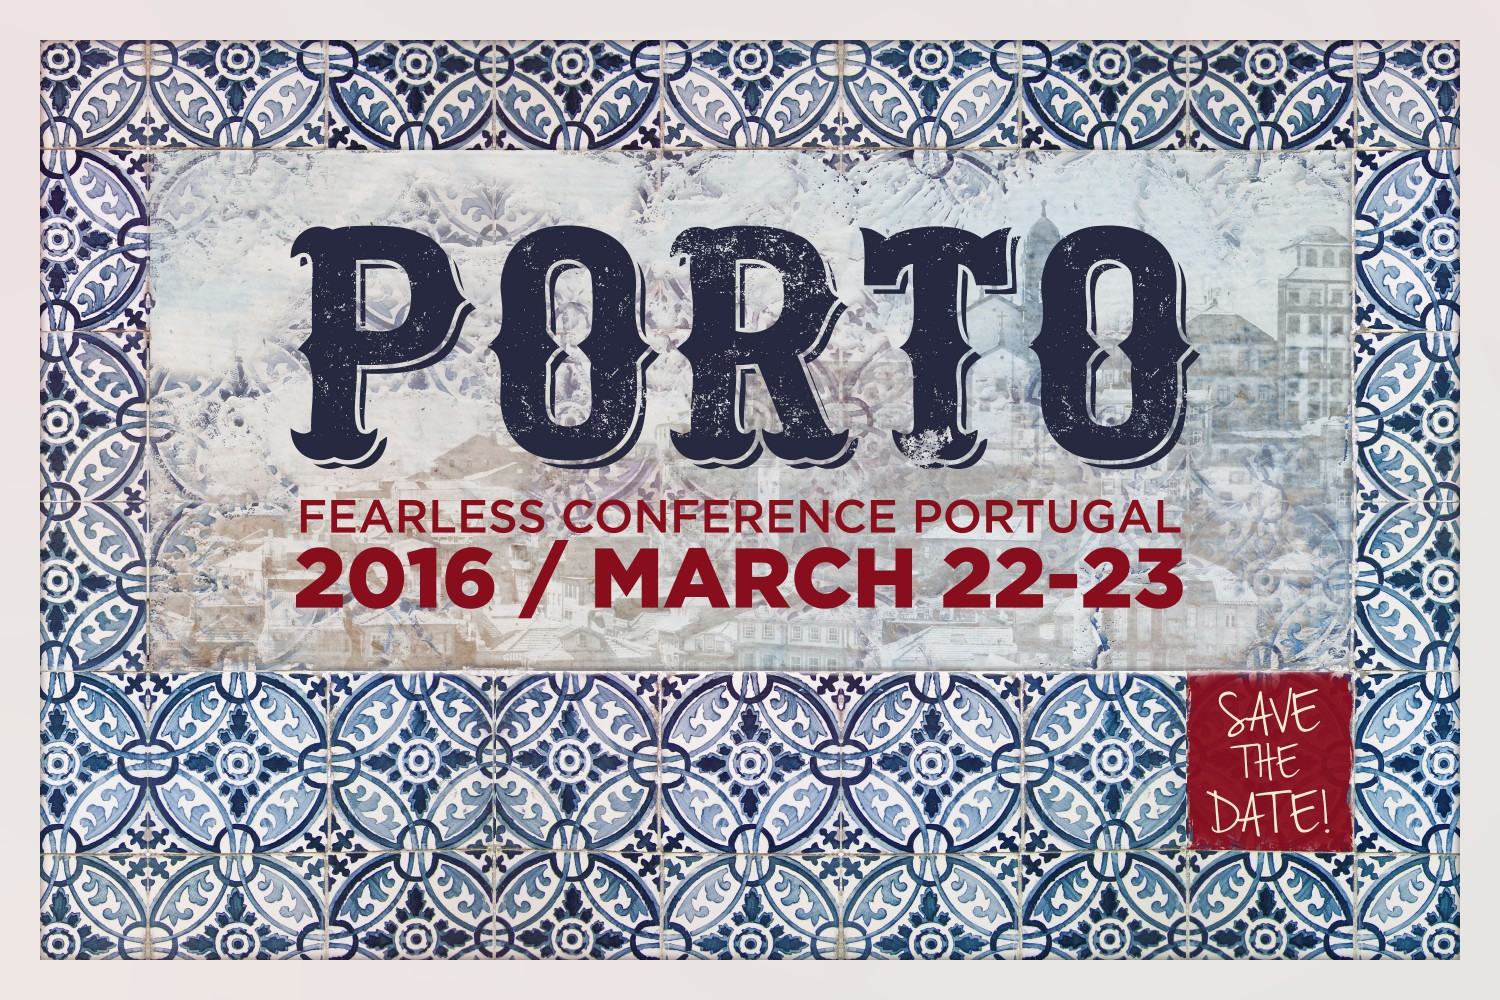 Fearless_conference_portugal.jpg